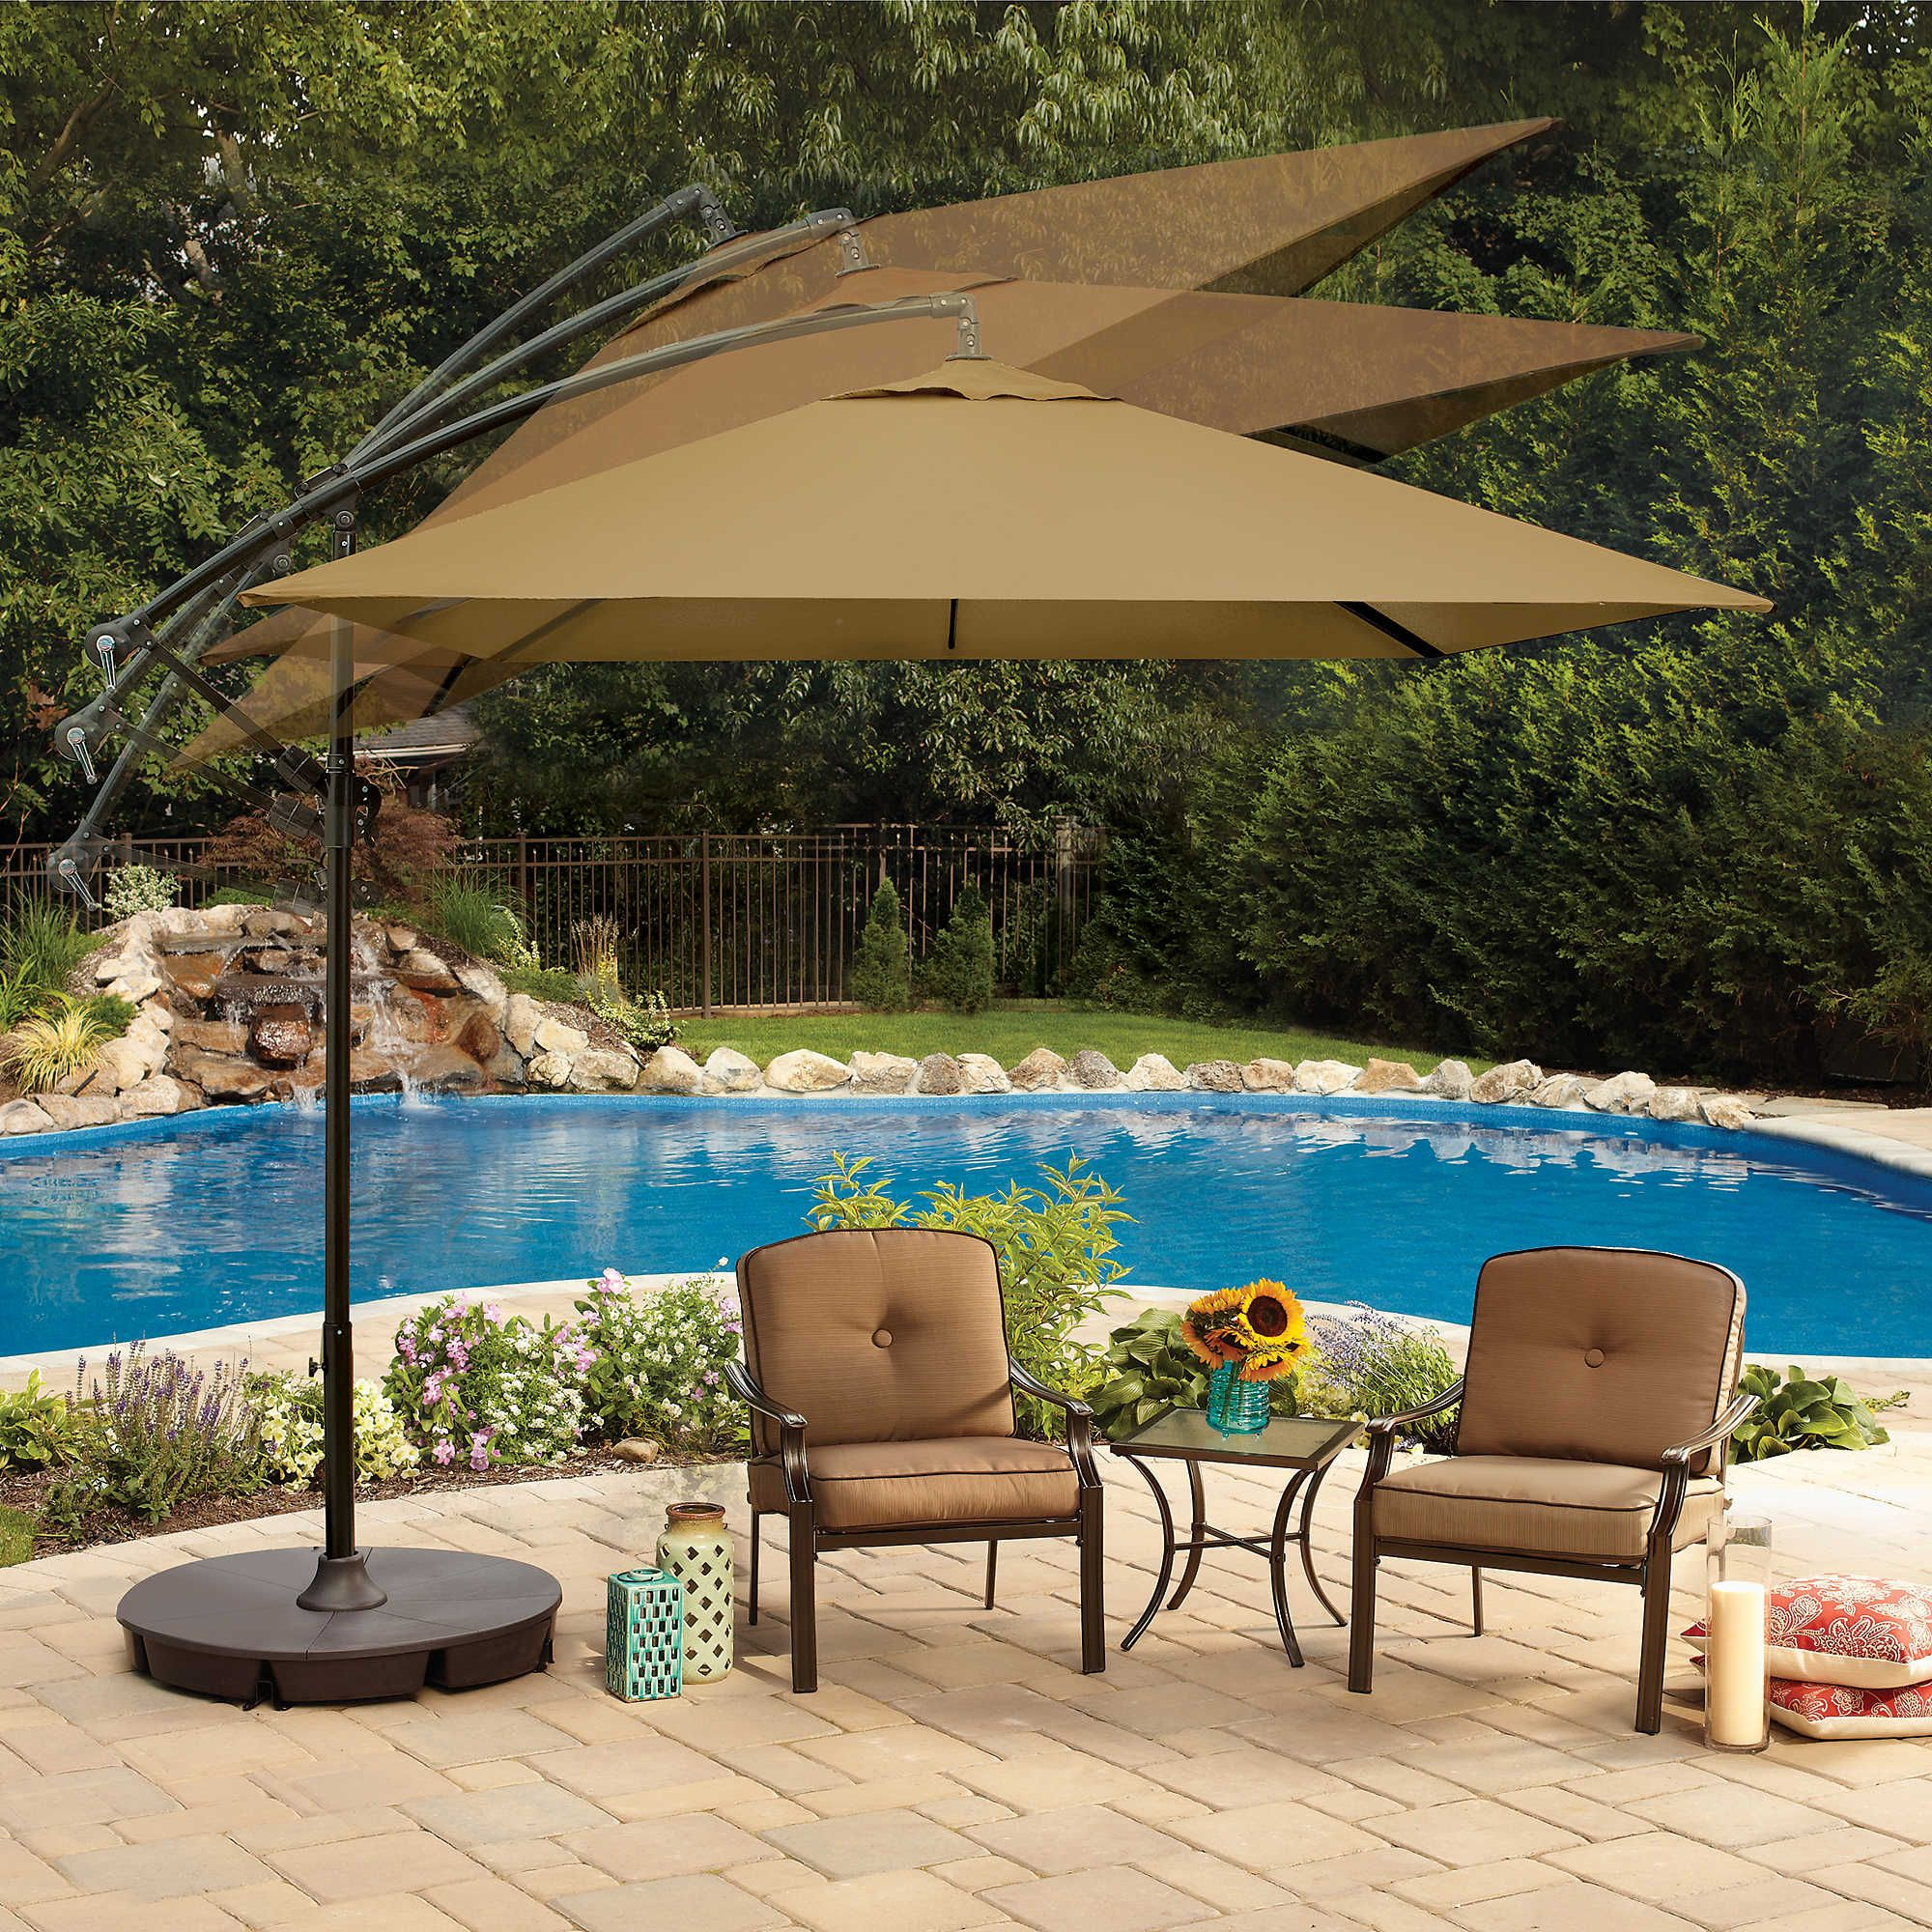 Marvelous 8 Foot Square Cantilever Umbrella In Fern